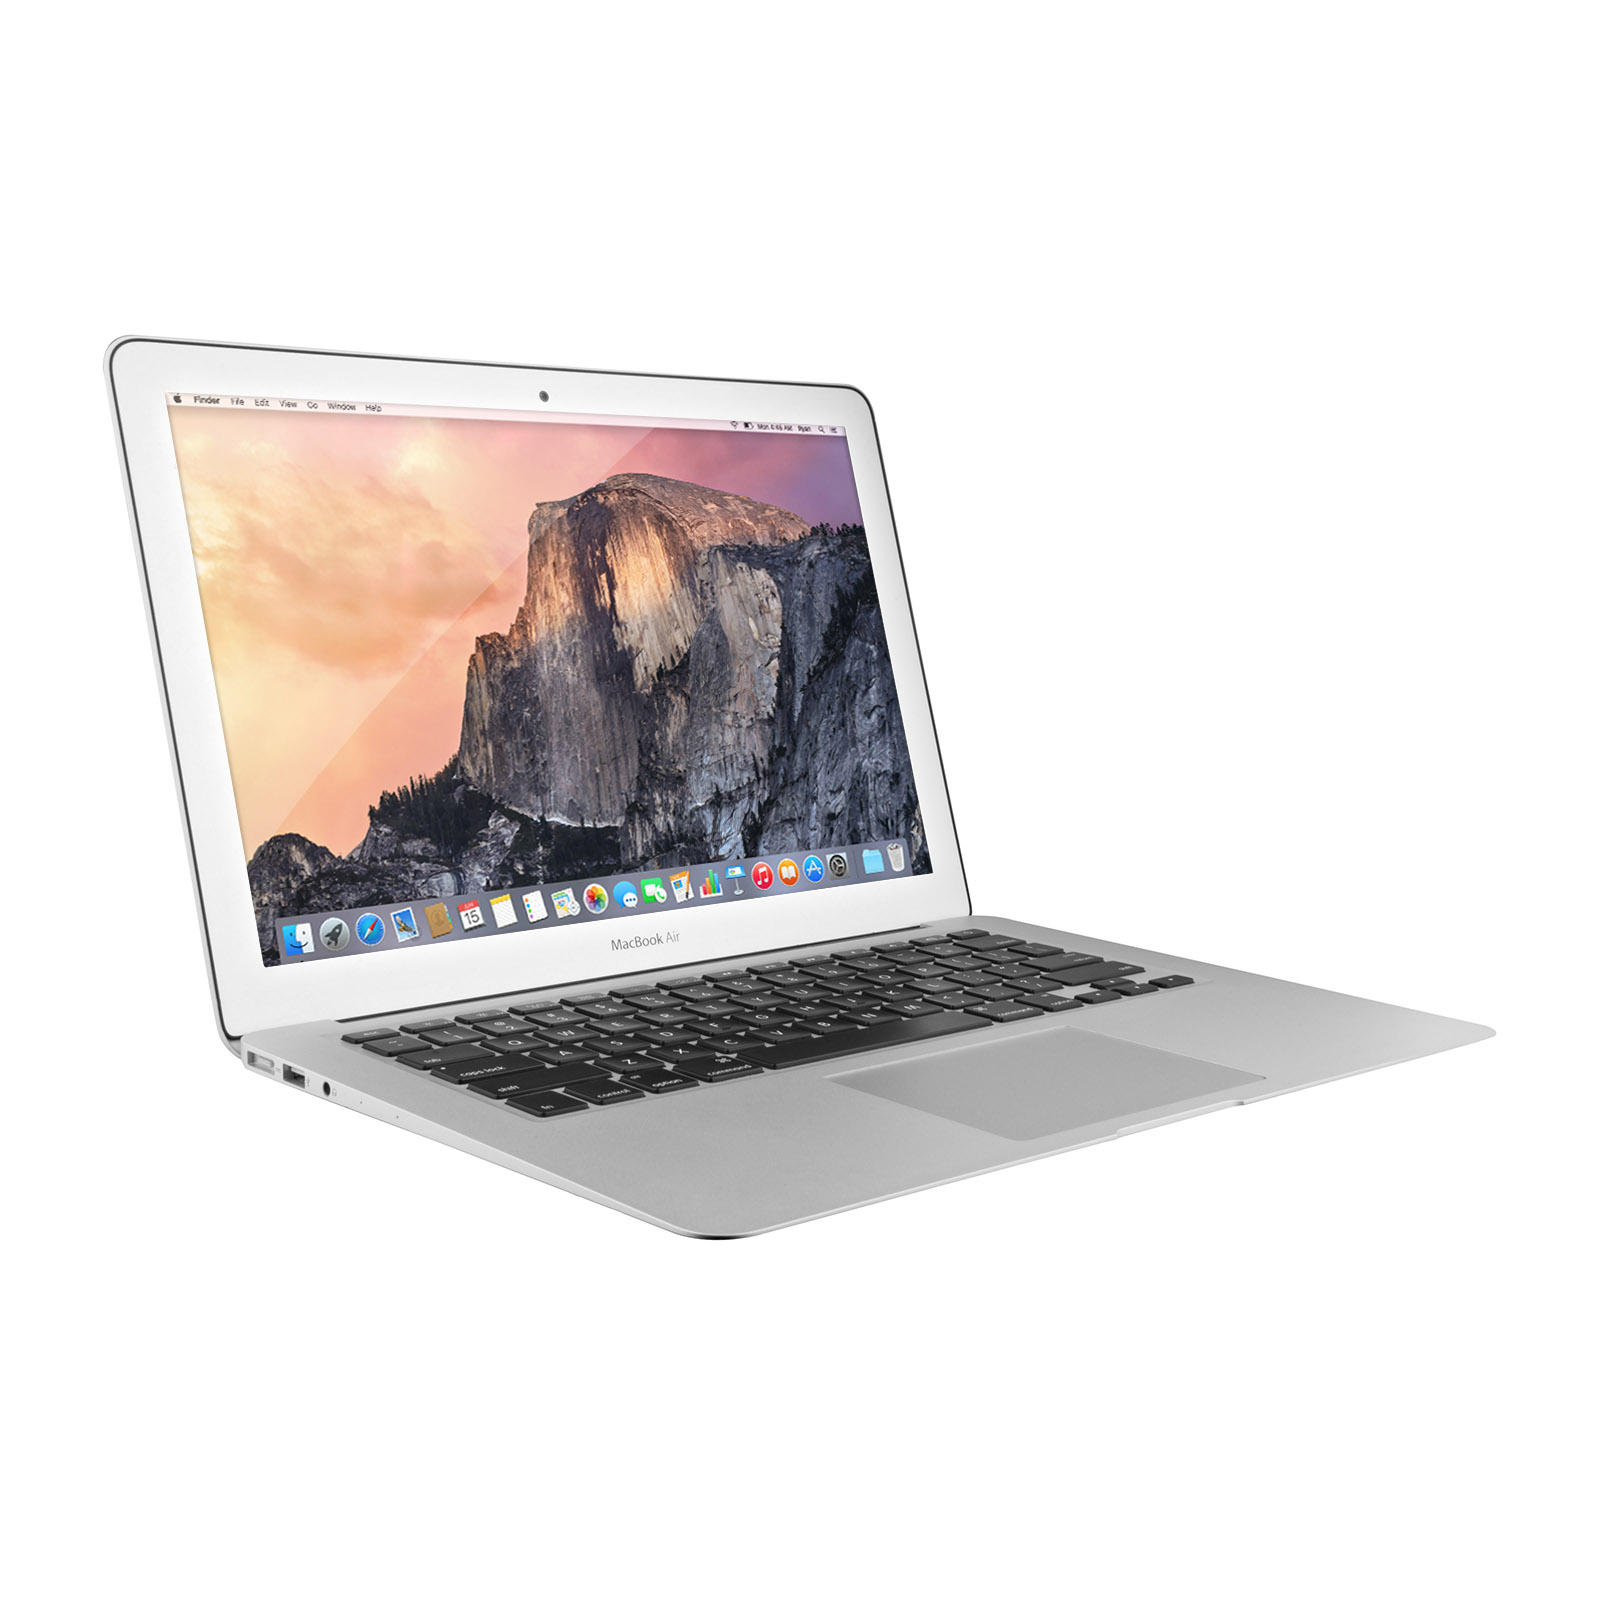 Jul 11,  · For Example, I have to buy Macbook Pro with Touch Bar model (MPTT2HN/A). The Macbook Pro with Touch Bar , 15″, GB SSD, i7 7th GEN, 16 GB RAM model in India will cost INR where as in USA it will cost INR ($).